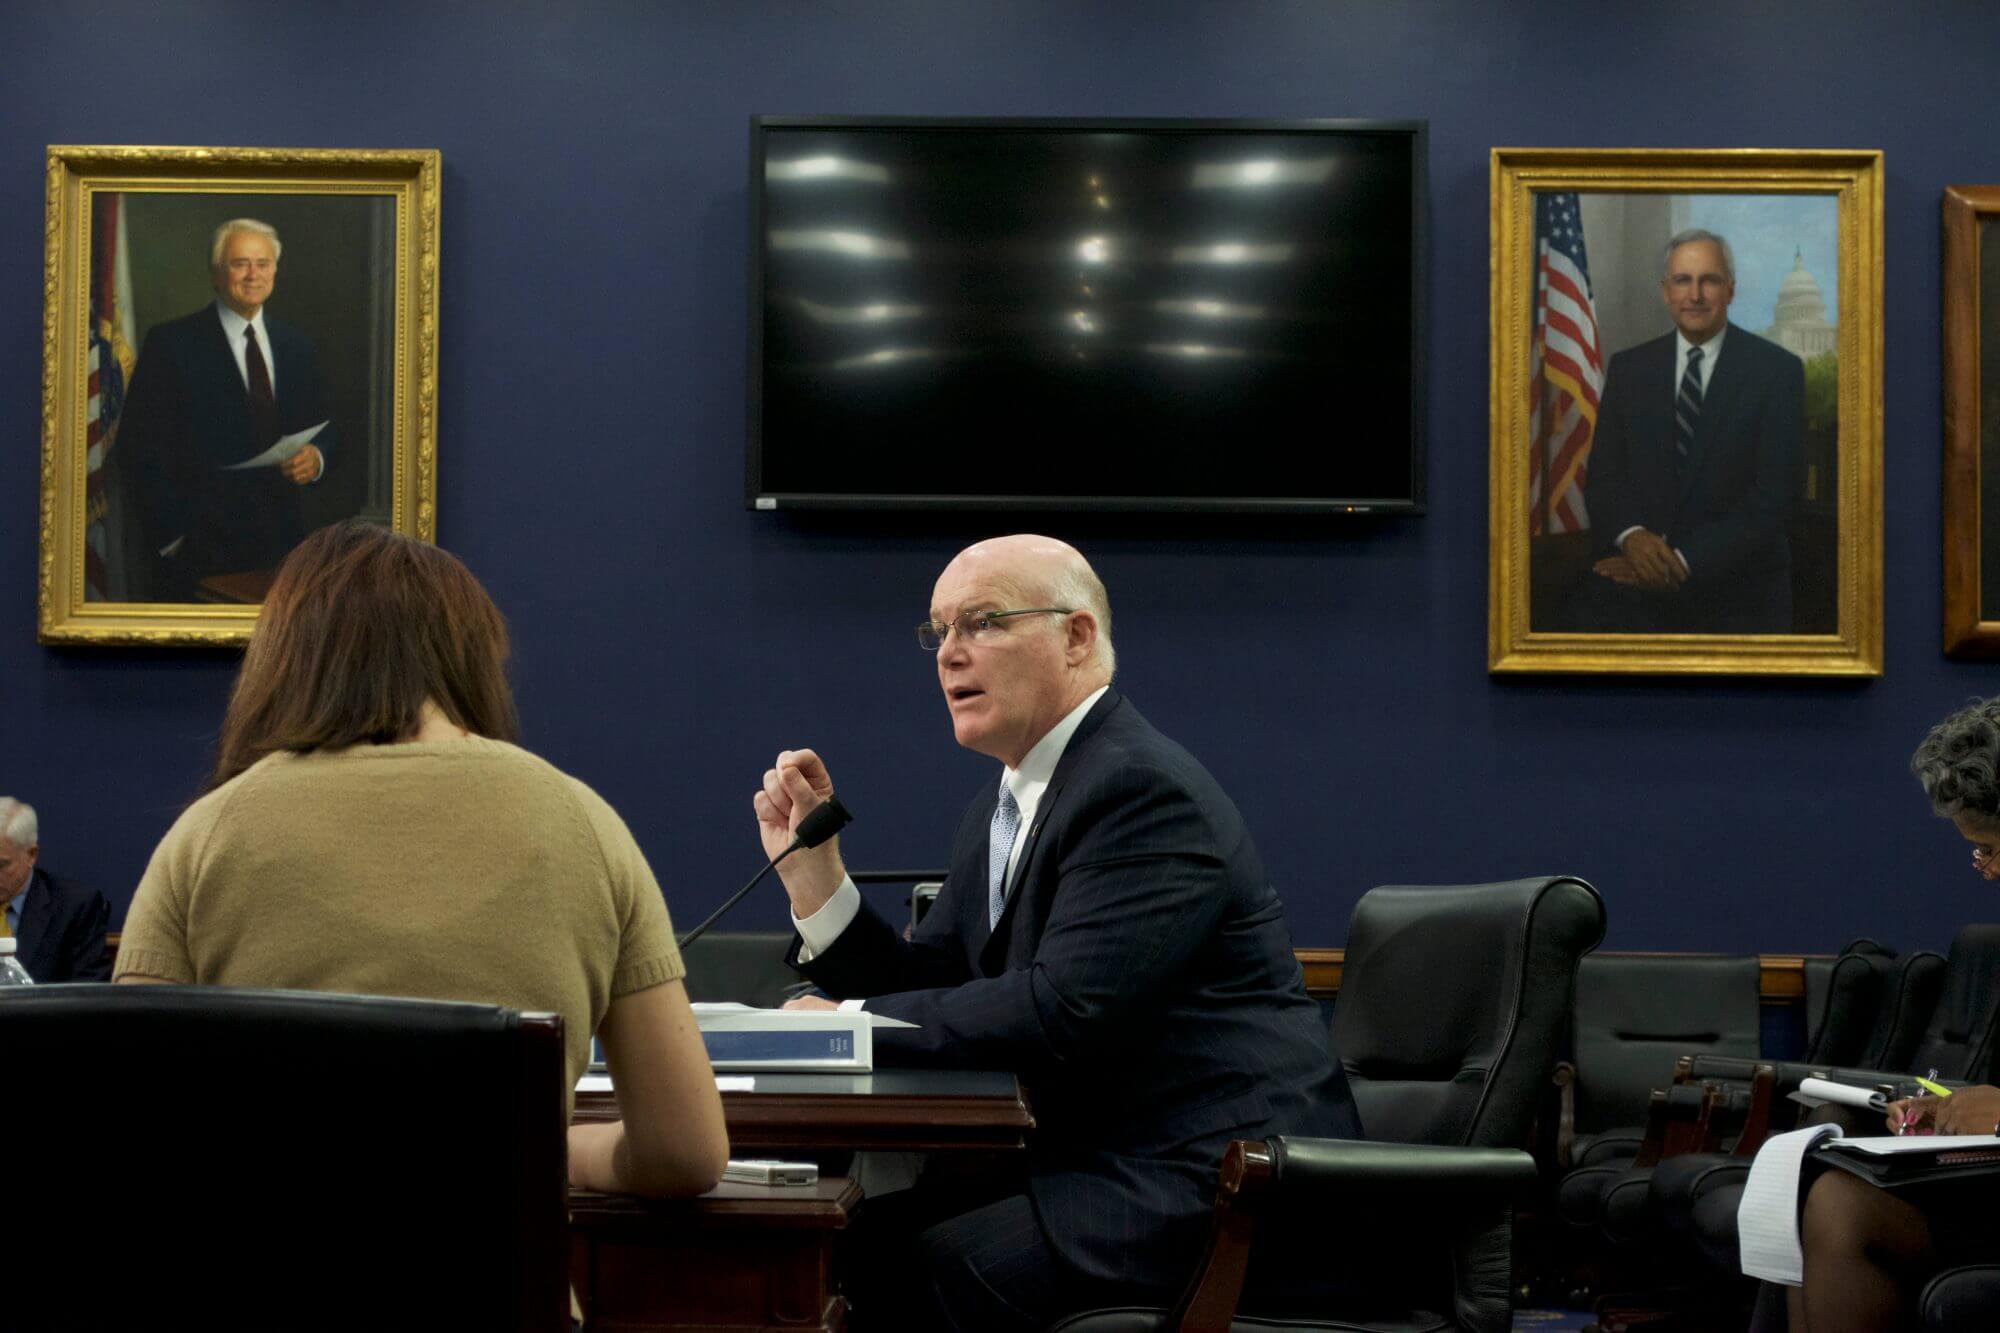 Secret Service director says campaign rally protesters not an issue